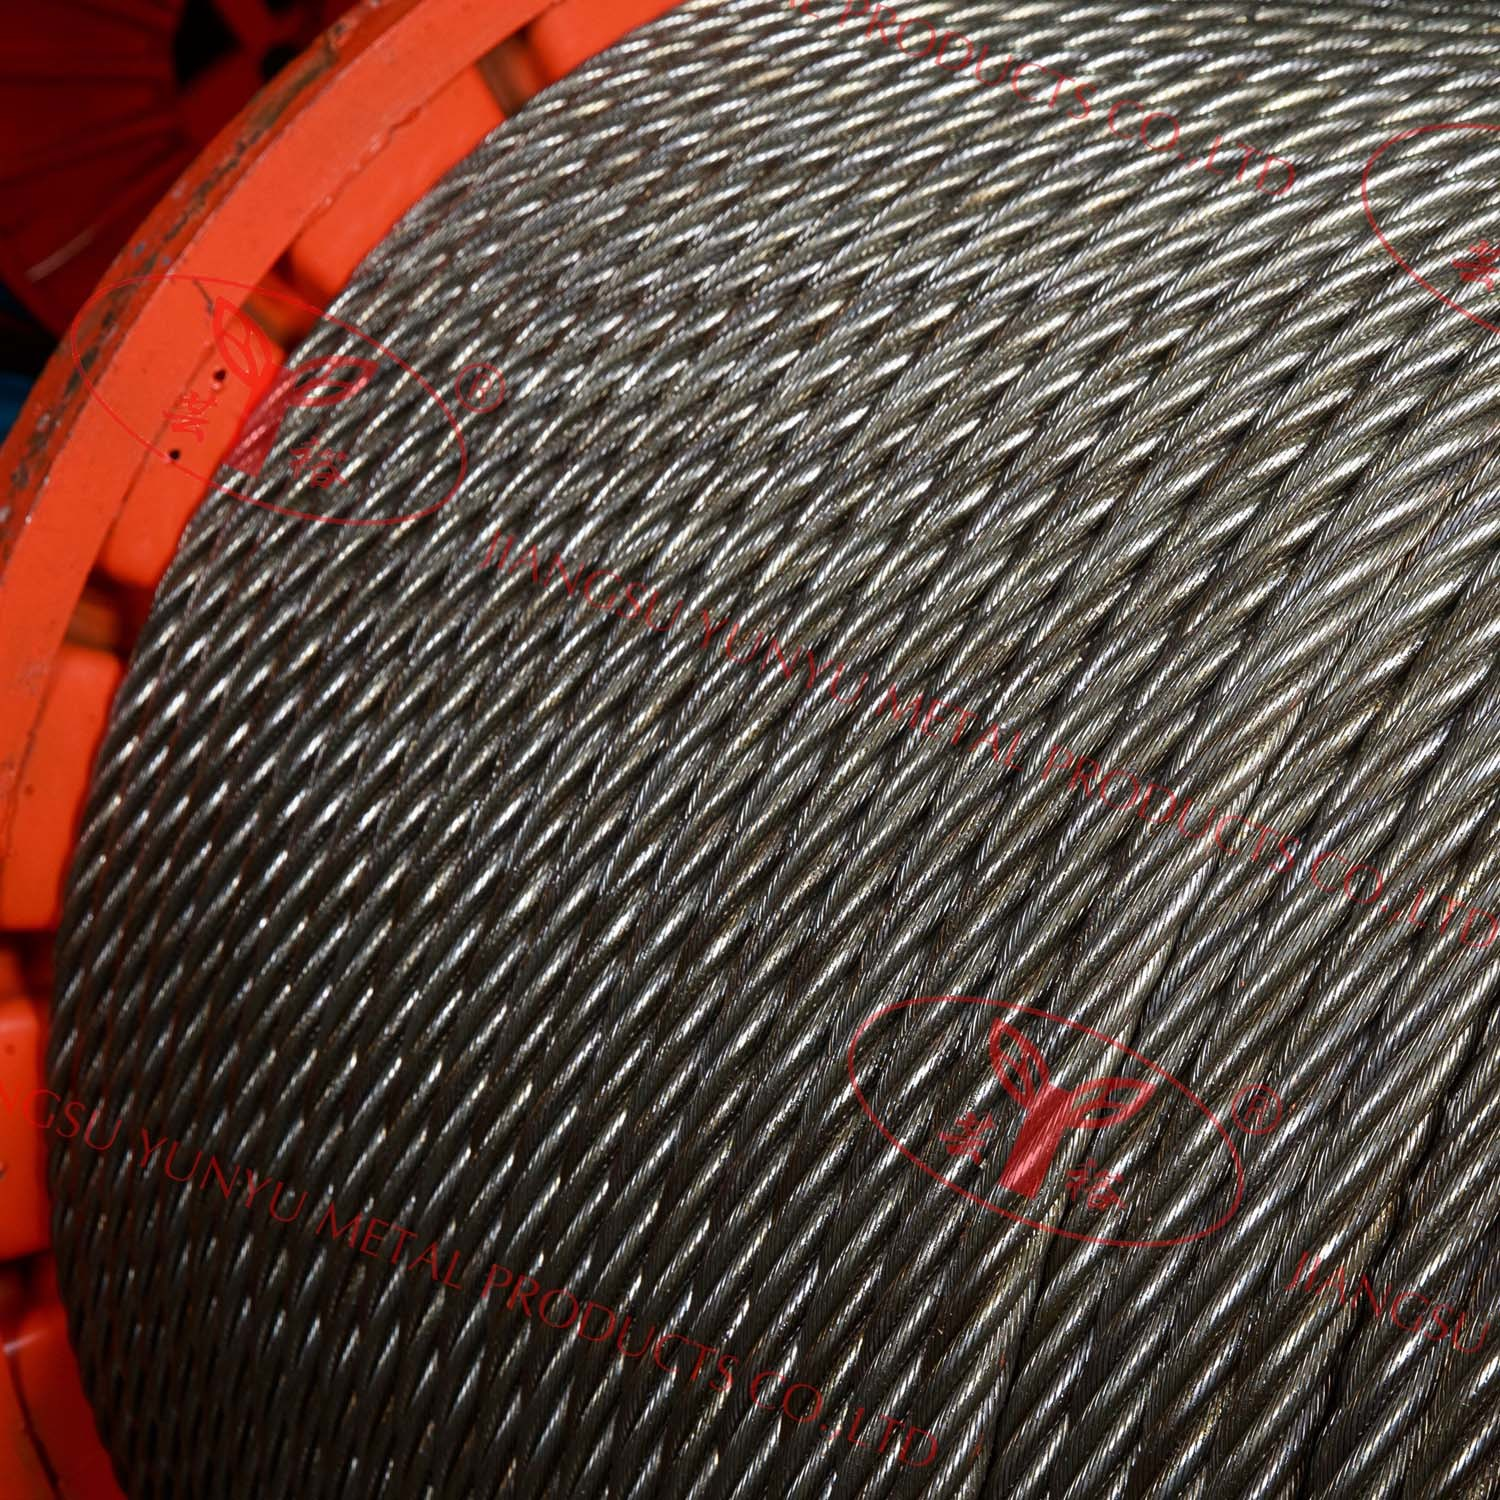 Compact Strand Stainless Steel Wire Rope - 6xk36ws